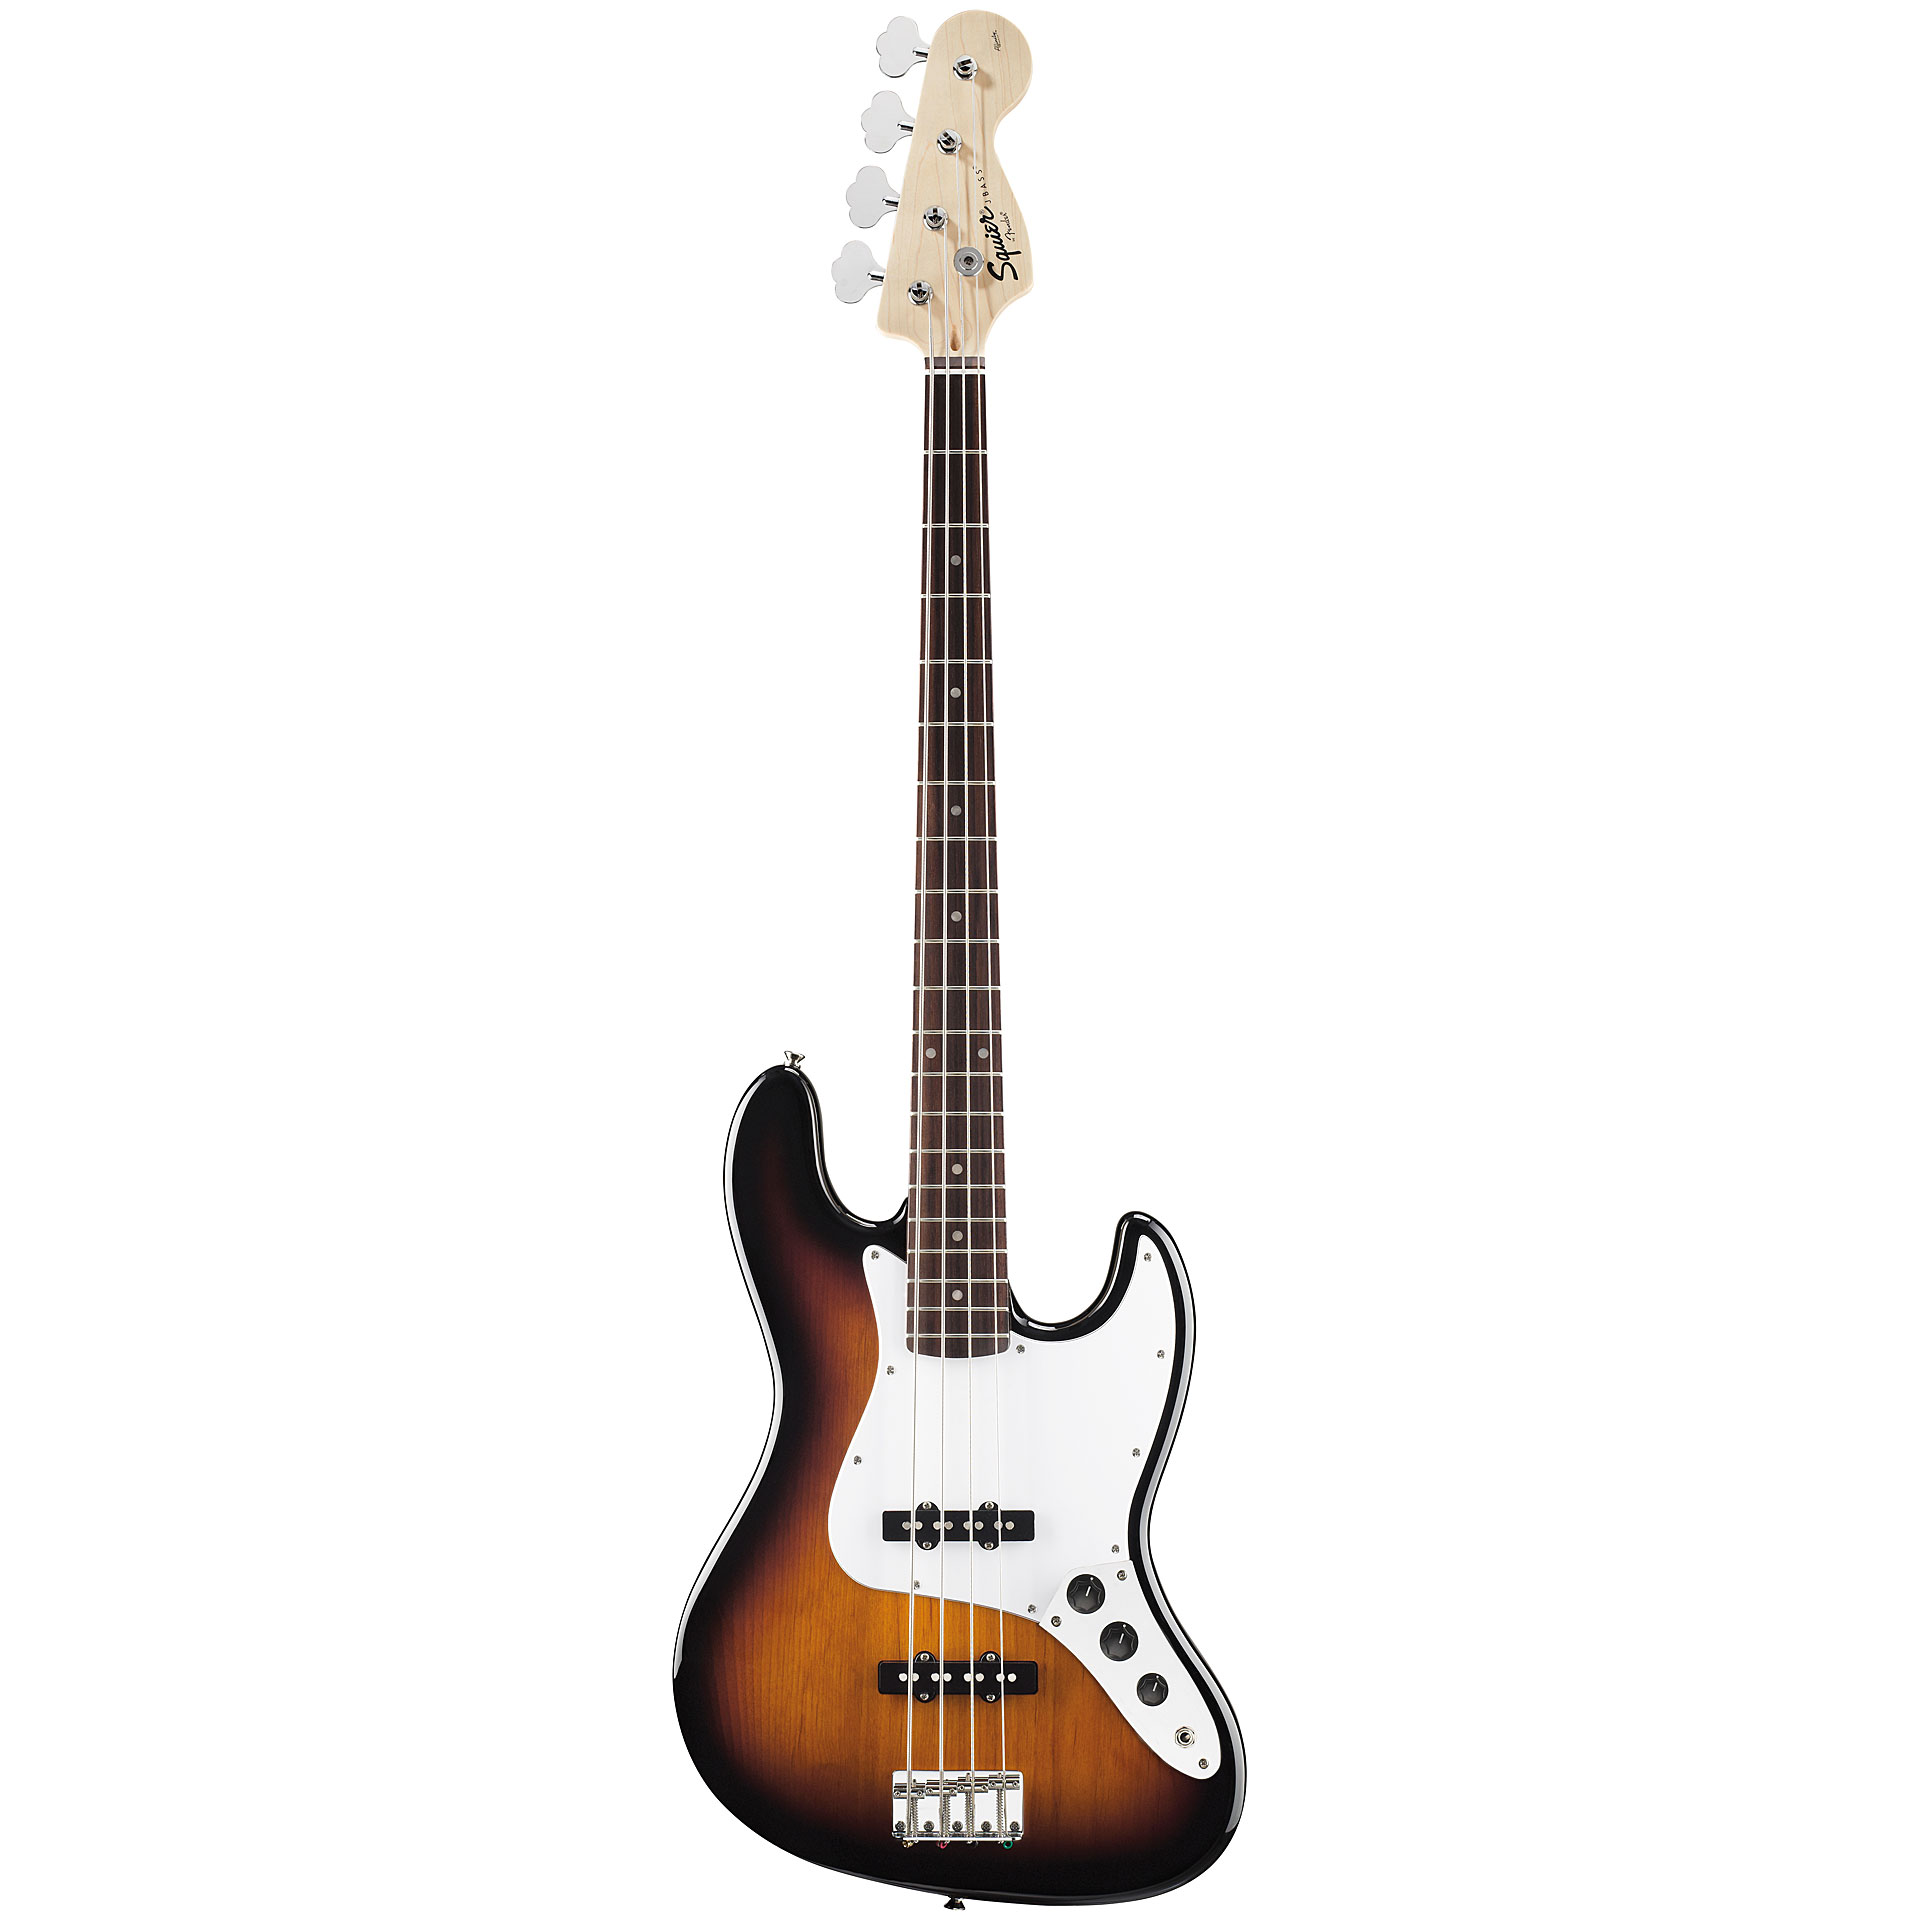 gearfeel reviews squier affinity jazz bass. Black Bedroom Furniture Sets. Home Design Ideas